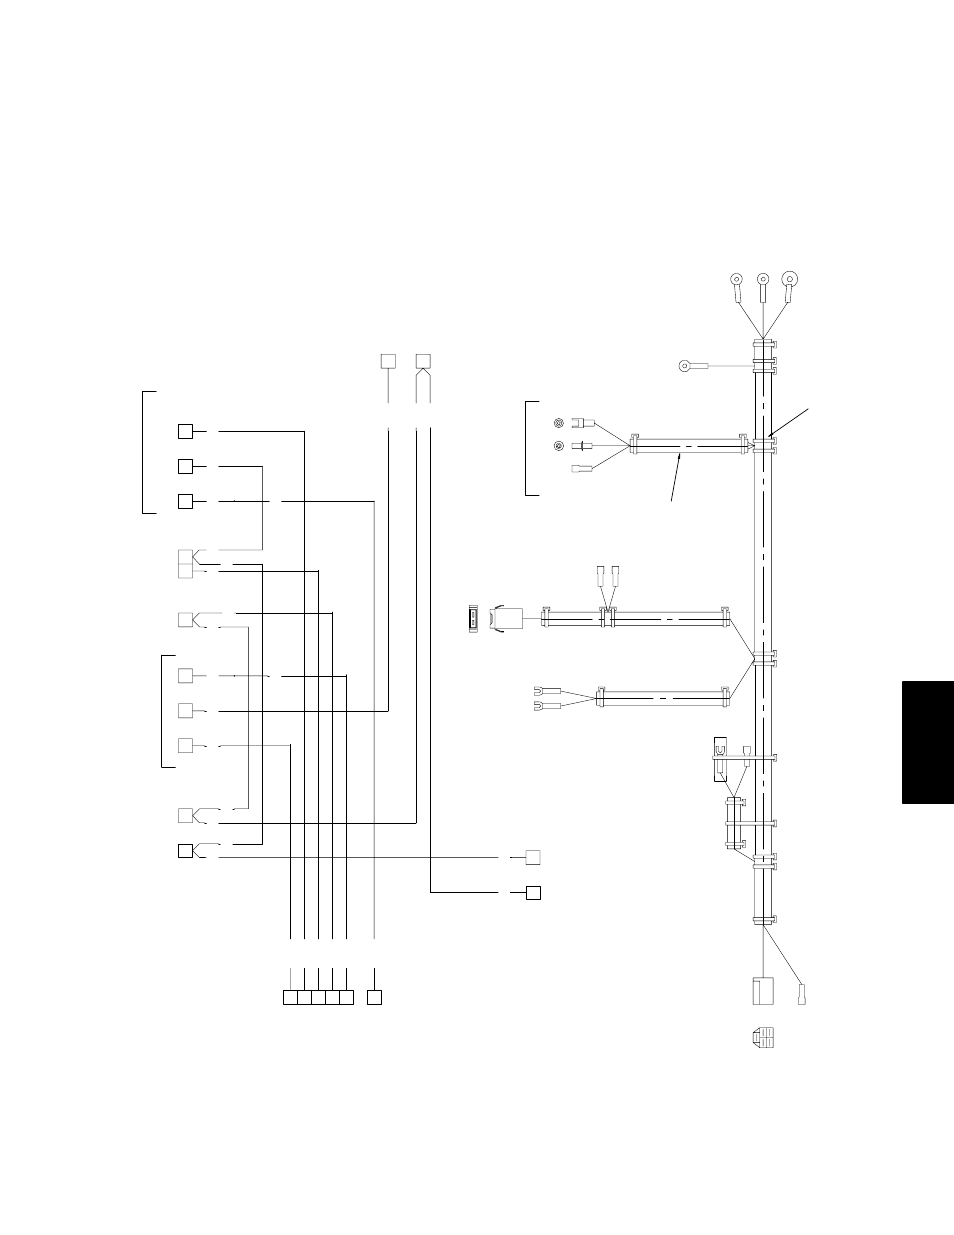 Toro Ignition Switch Wiring Diagram from lh3.googleusercontent.com